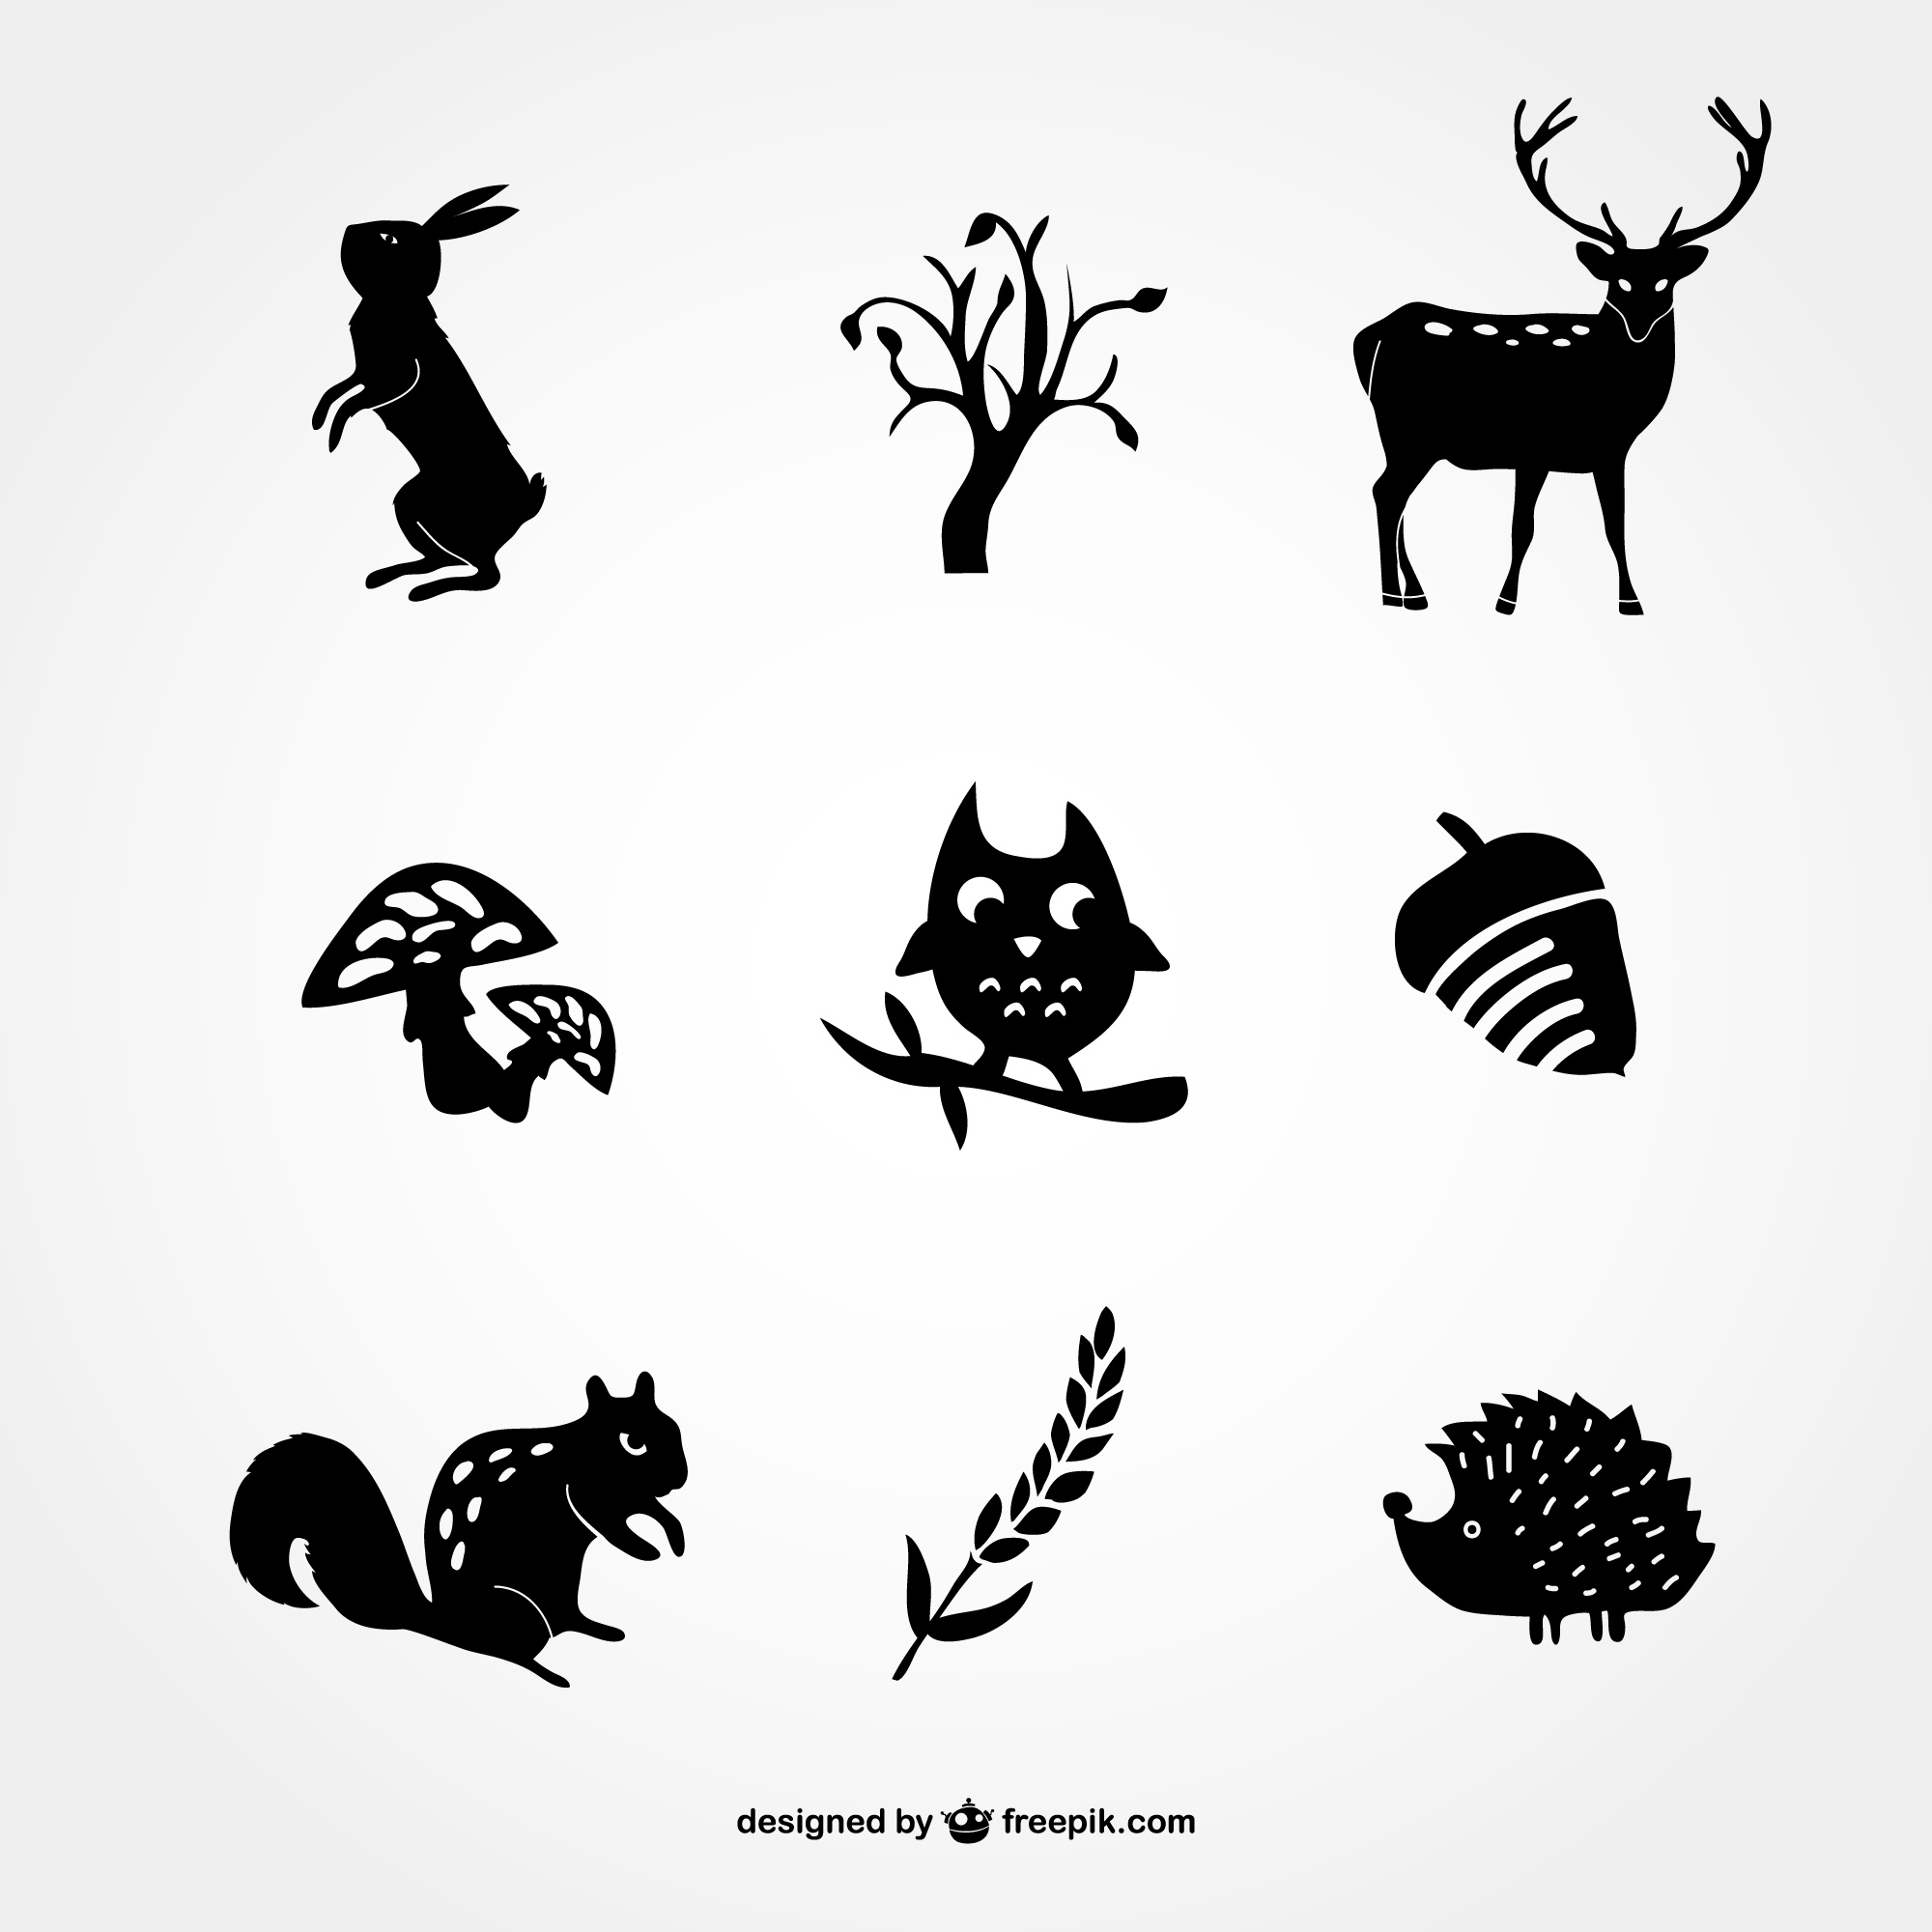 Forest silhouette icons